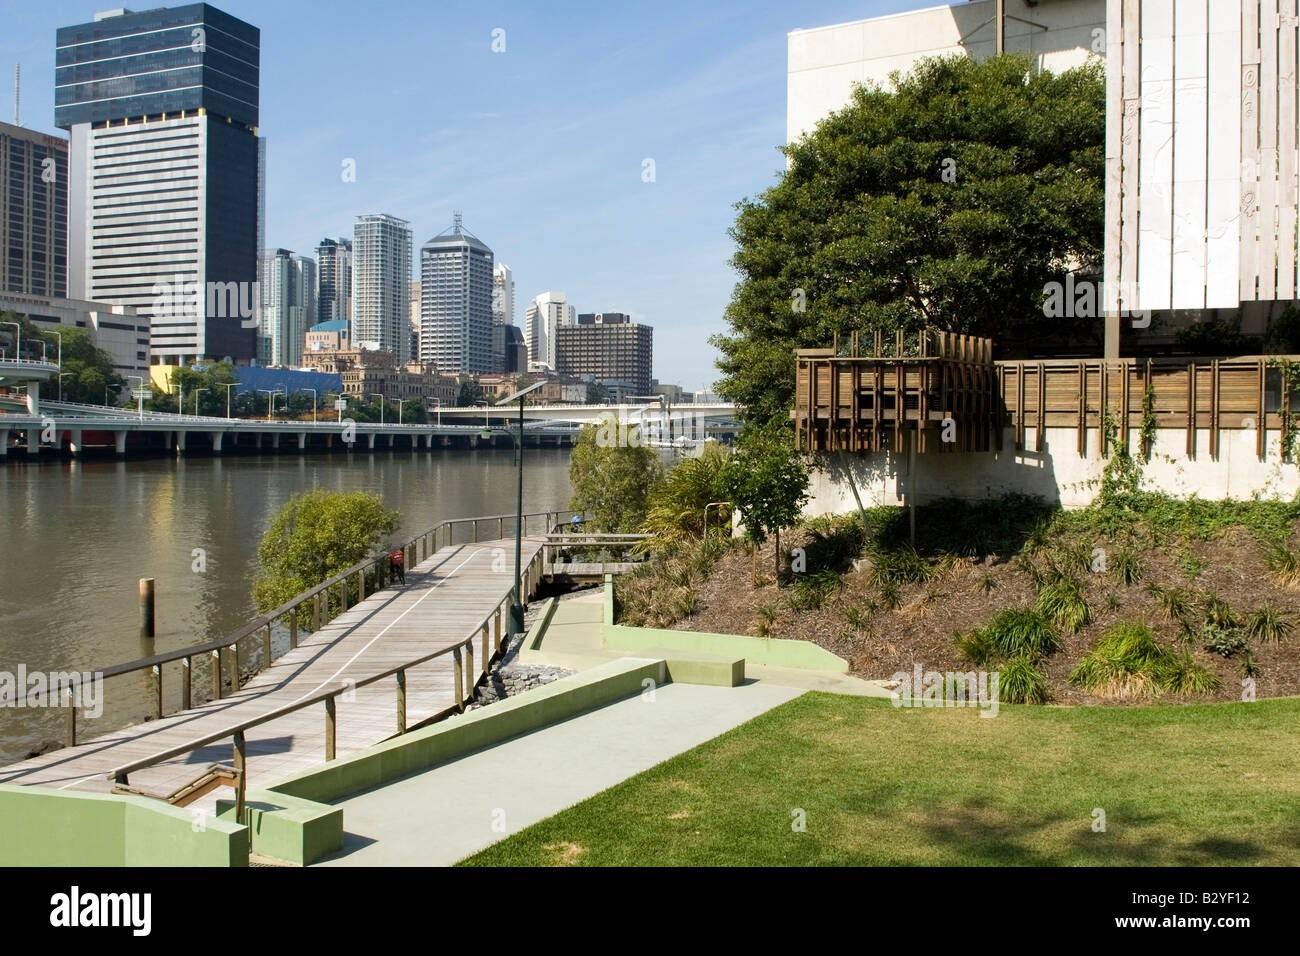 Harmonious connections along the Brisbane River, Australia - Stock Image